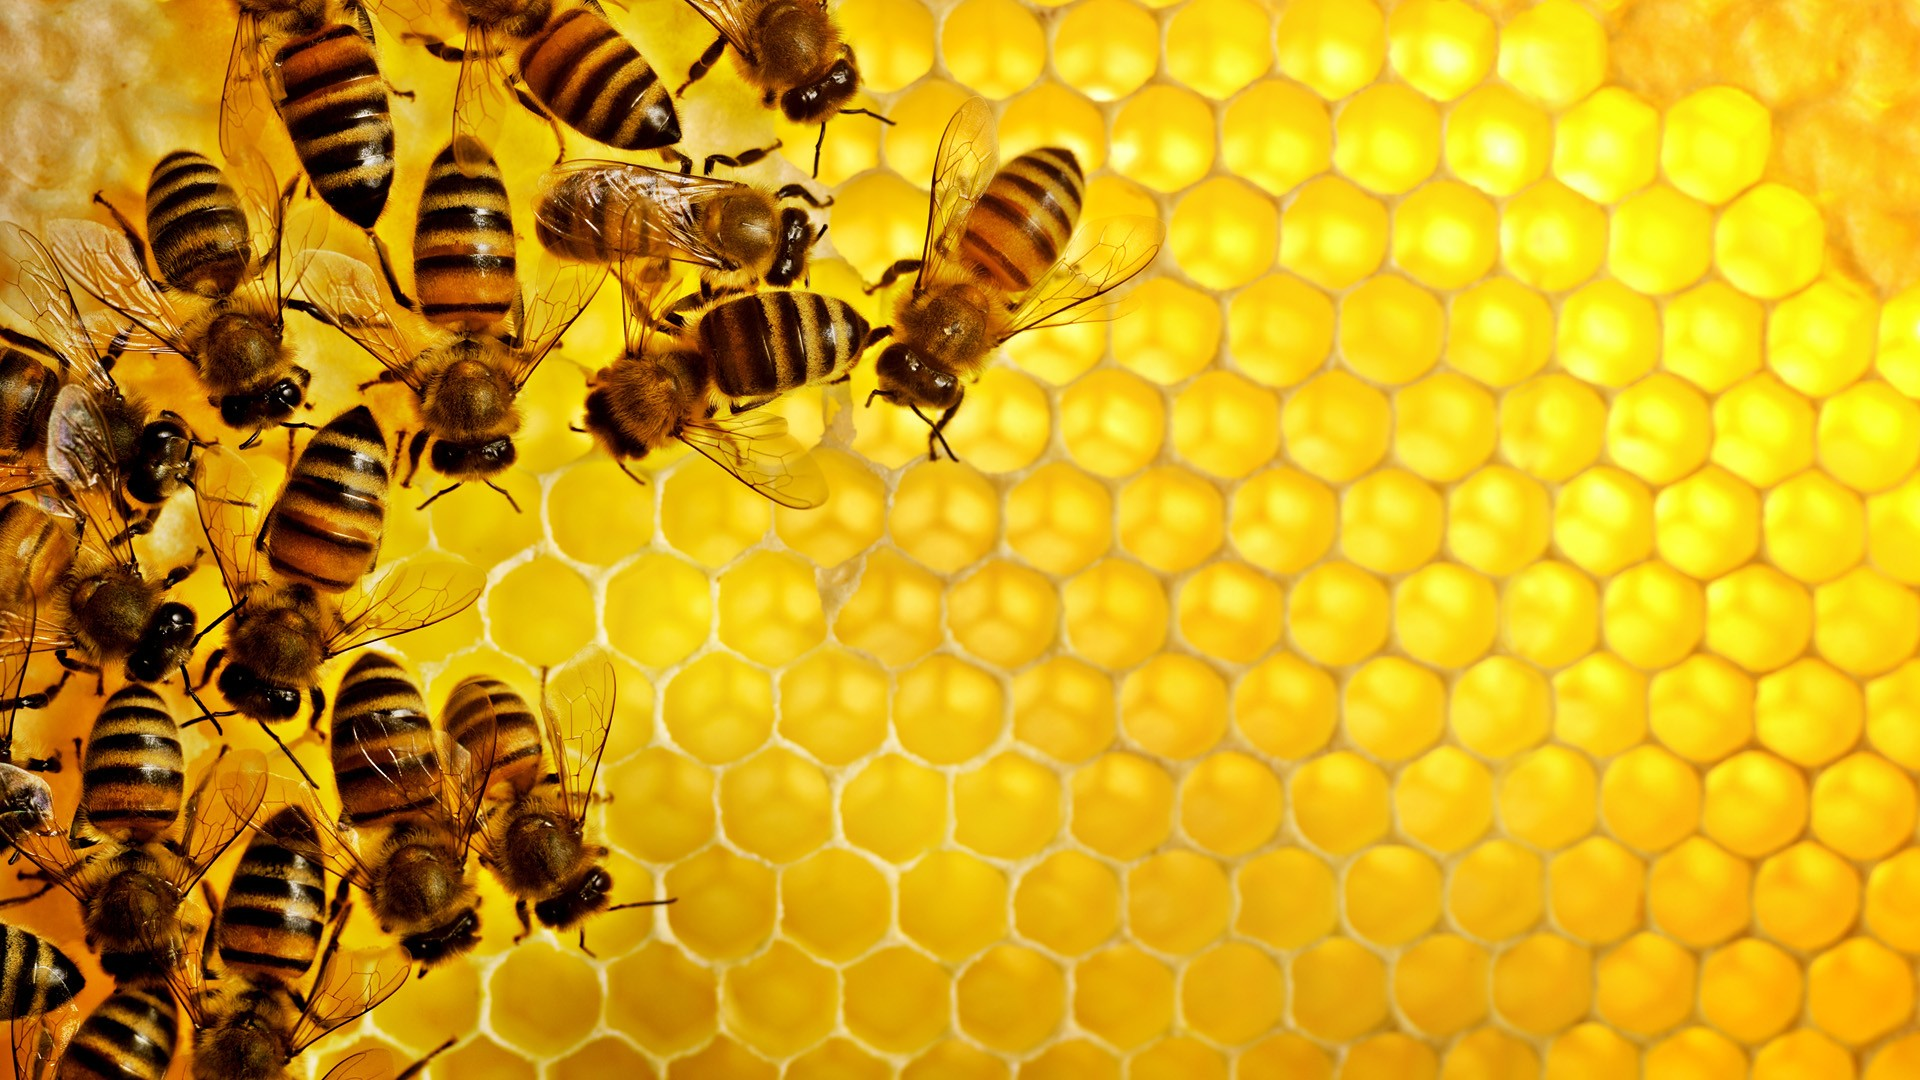 Sweden Honey Wallpaper 1920x1080 Sweden Honey Bees 1920x1080